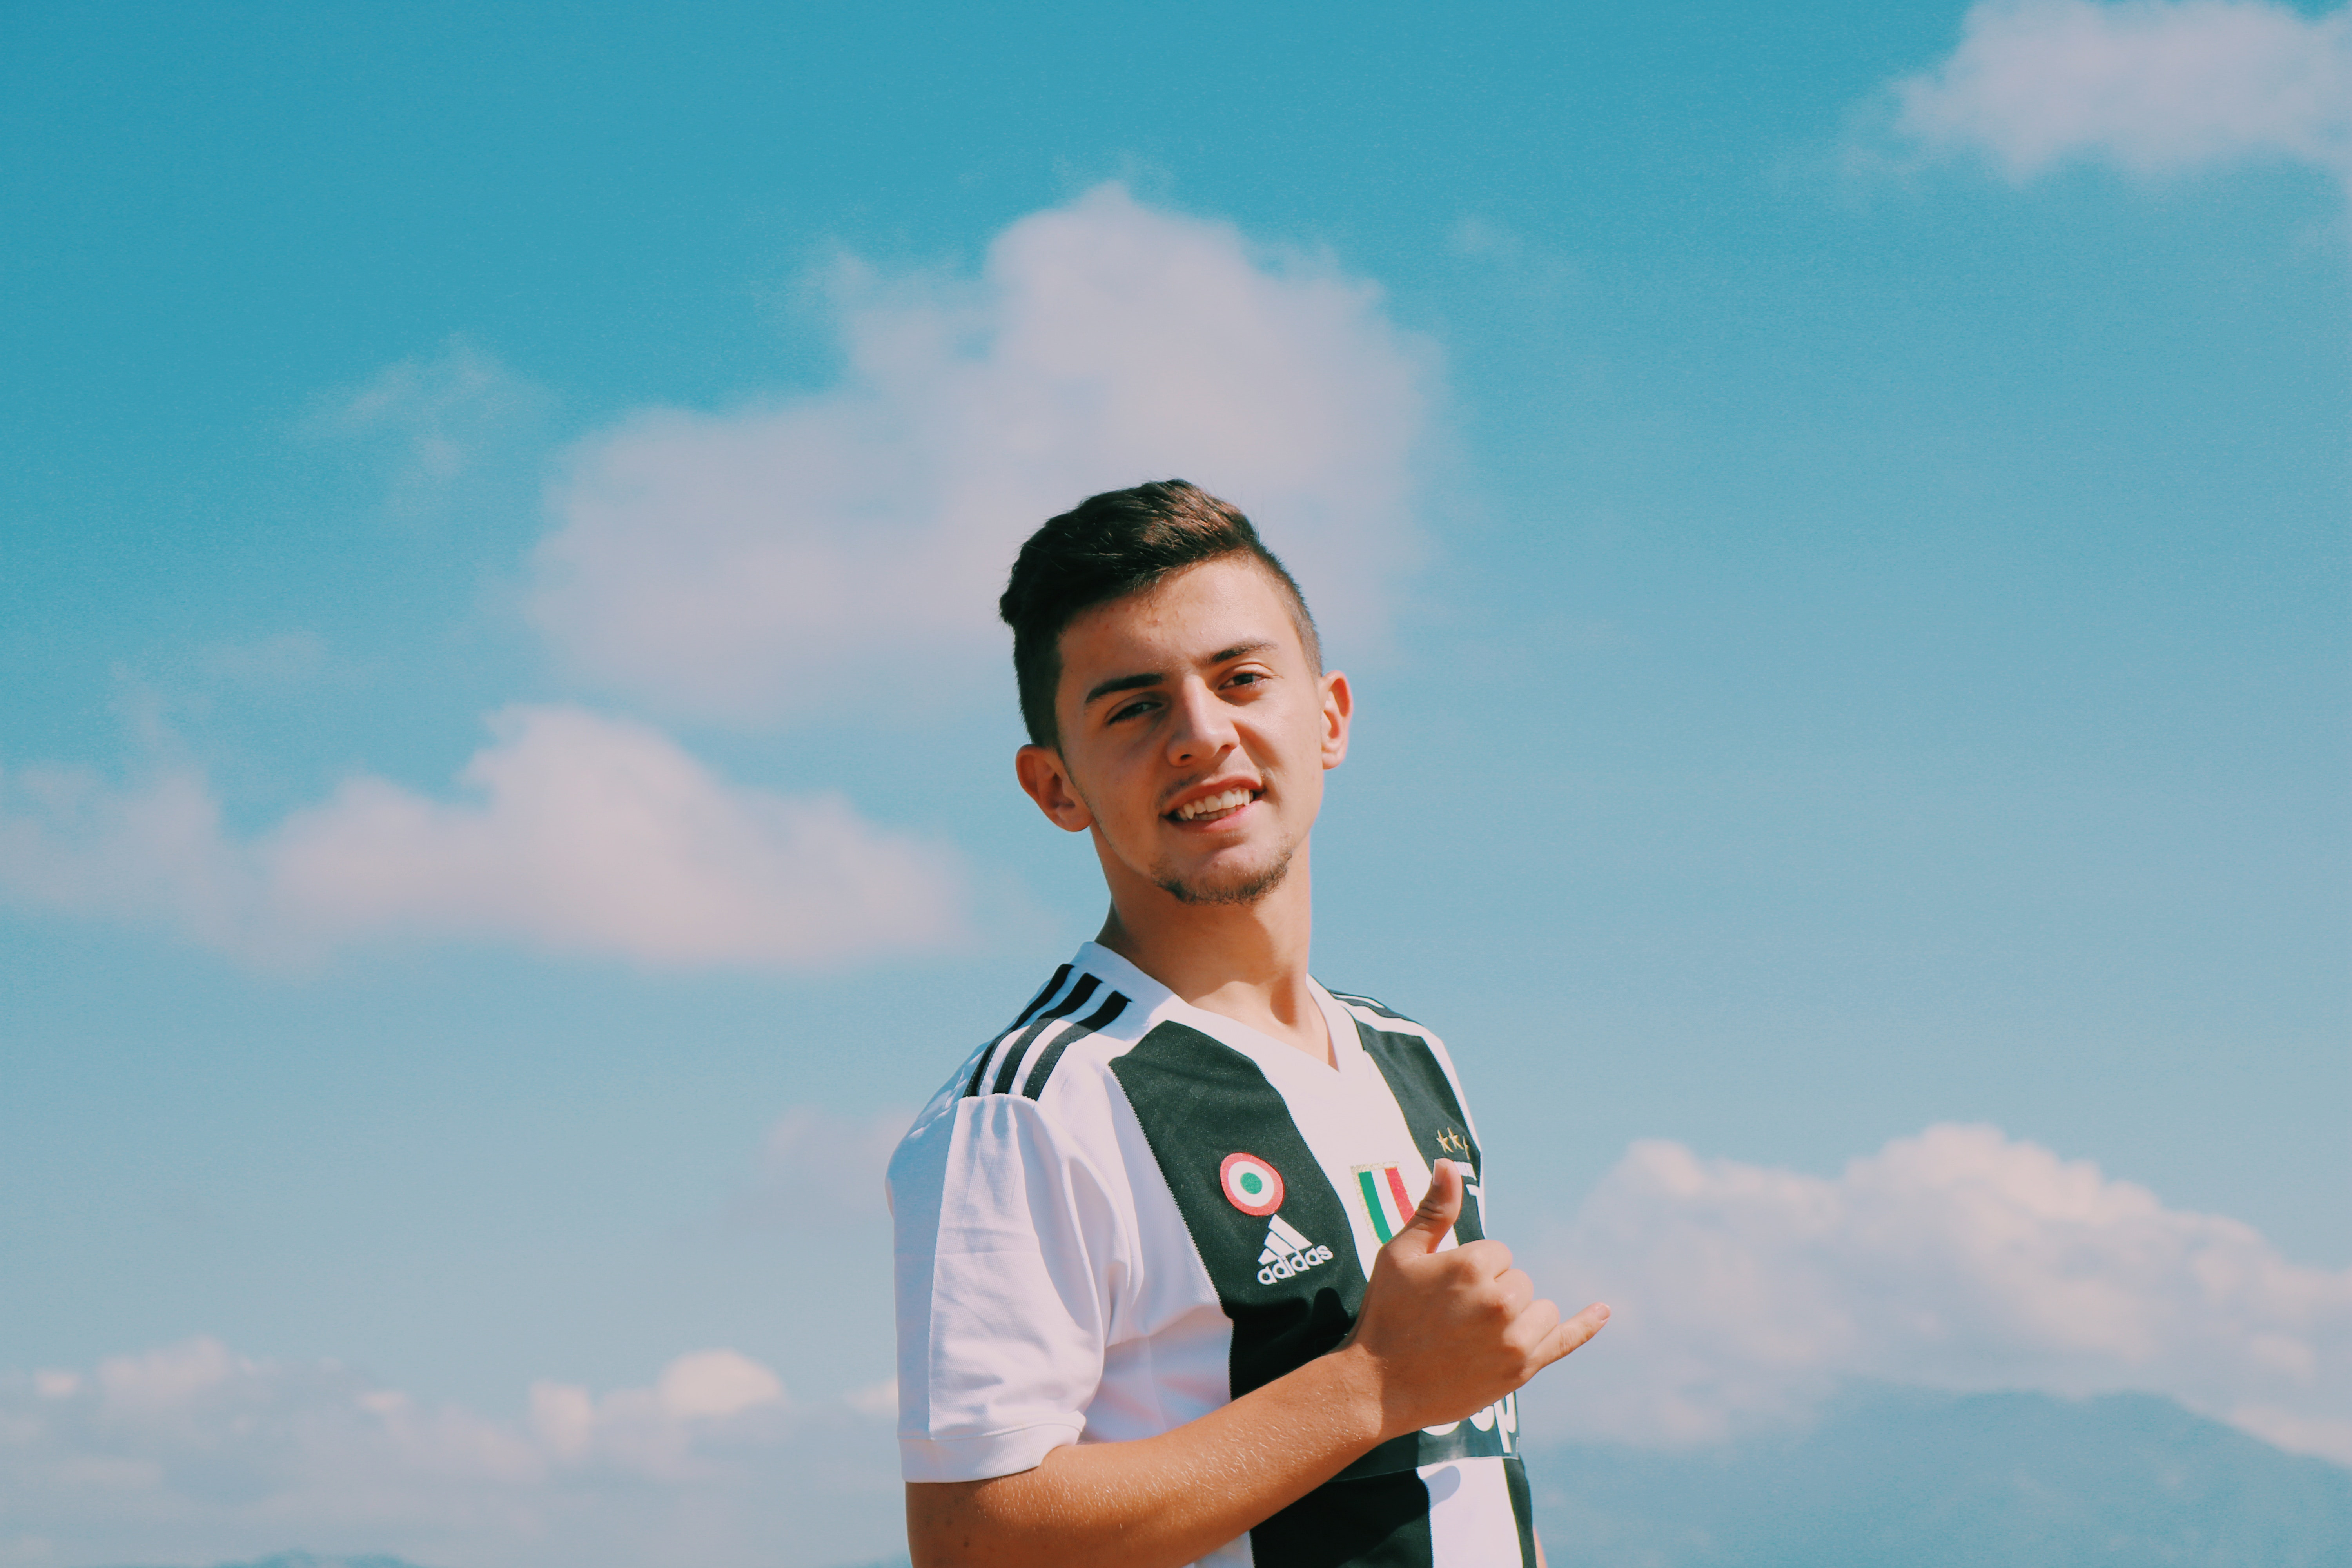 Young boy, smile, wear, sky